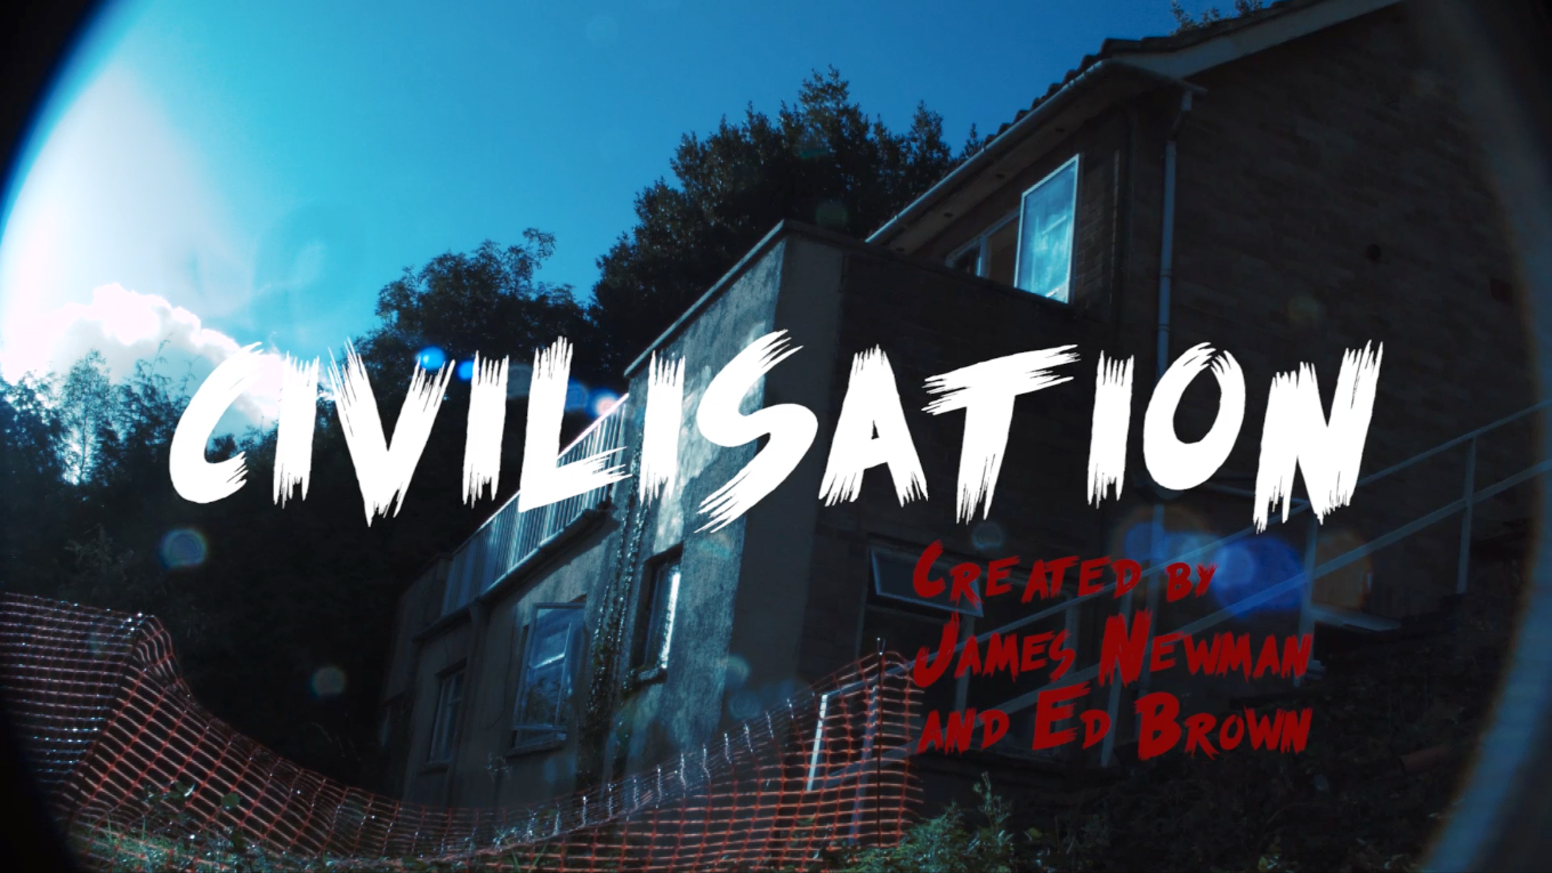 Civilisation is a Sitcom Pilot about a group of graduates who claim squatters rights in their old University House. Hilarity ensues.